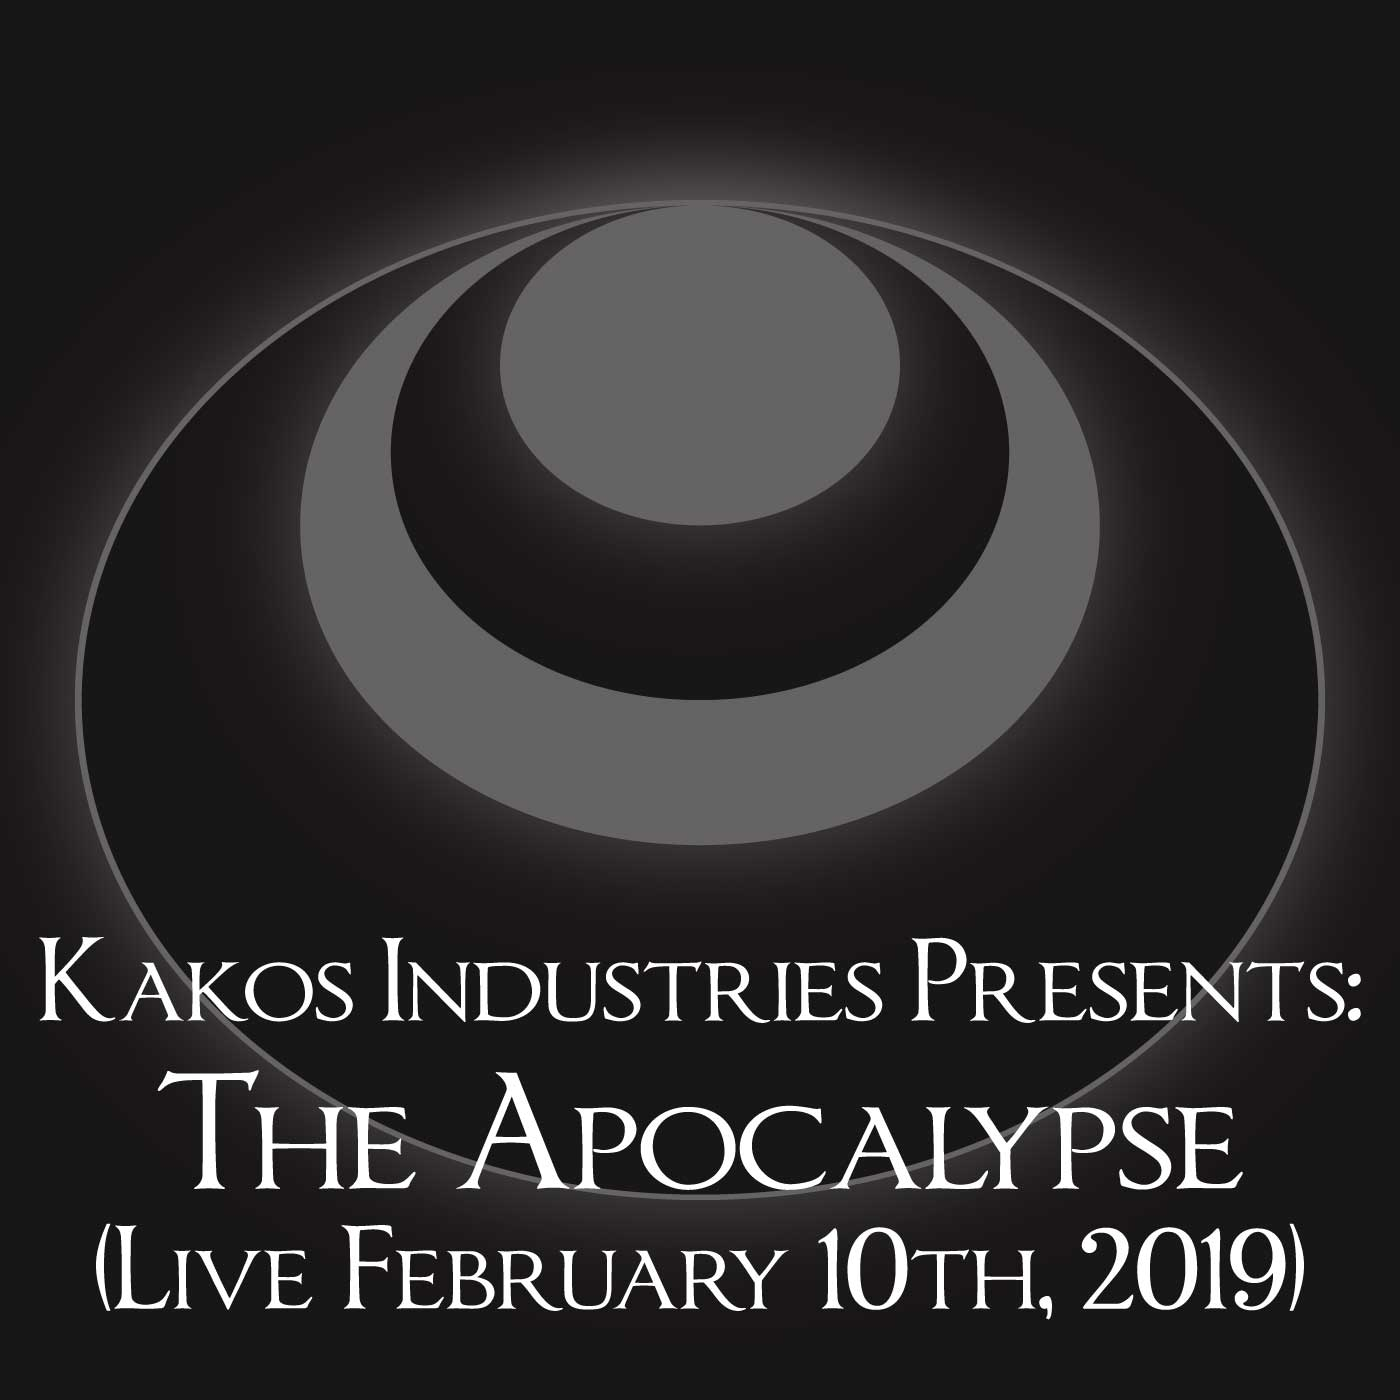 32c9a7d42ee Kakos Industries Presents: The Apocalypse (Live February 10th, 2019 ...